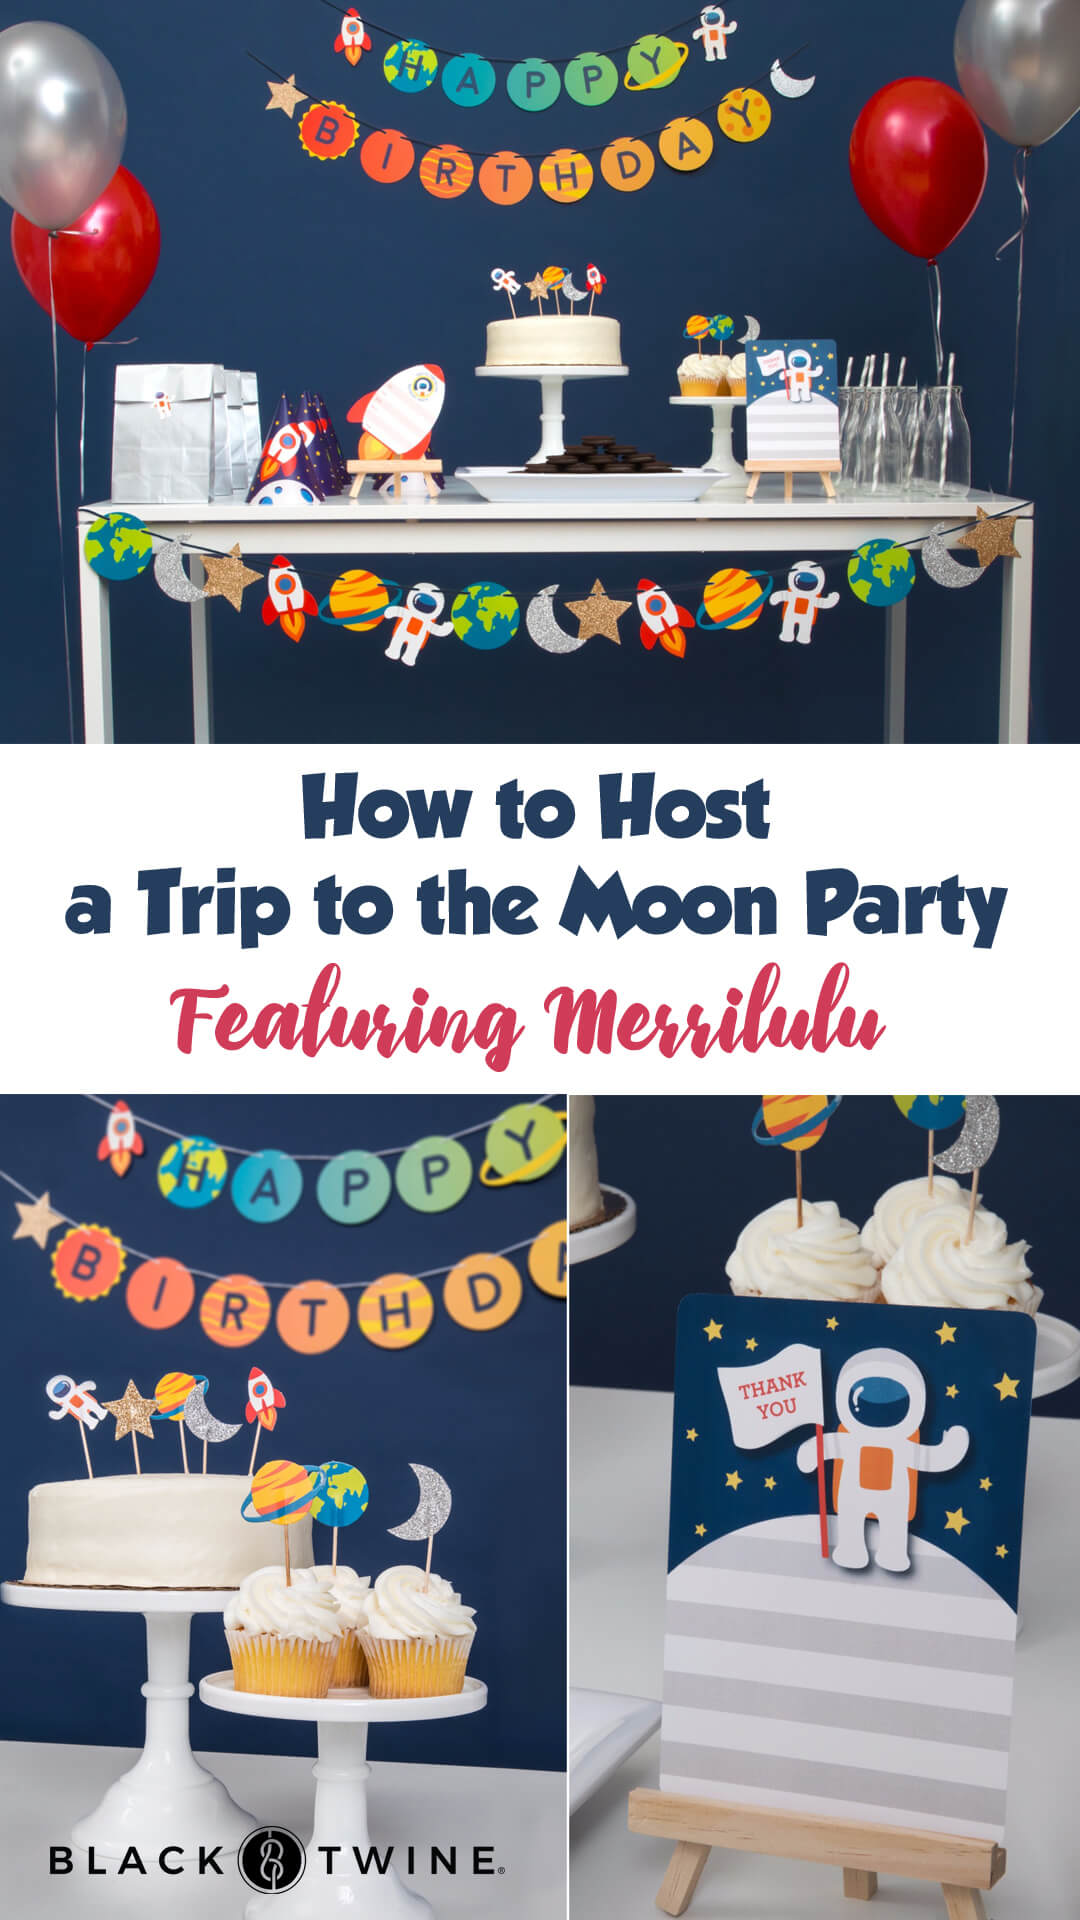 Dessert Table from To The Moon Birthday Party by Merrilulu | Black Twine